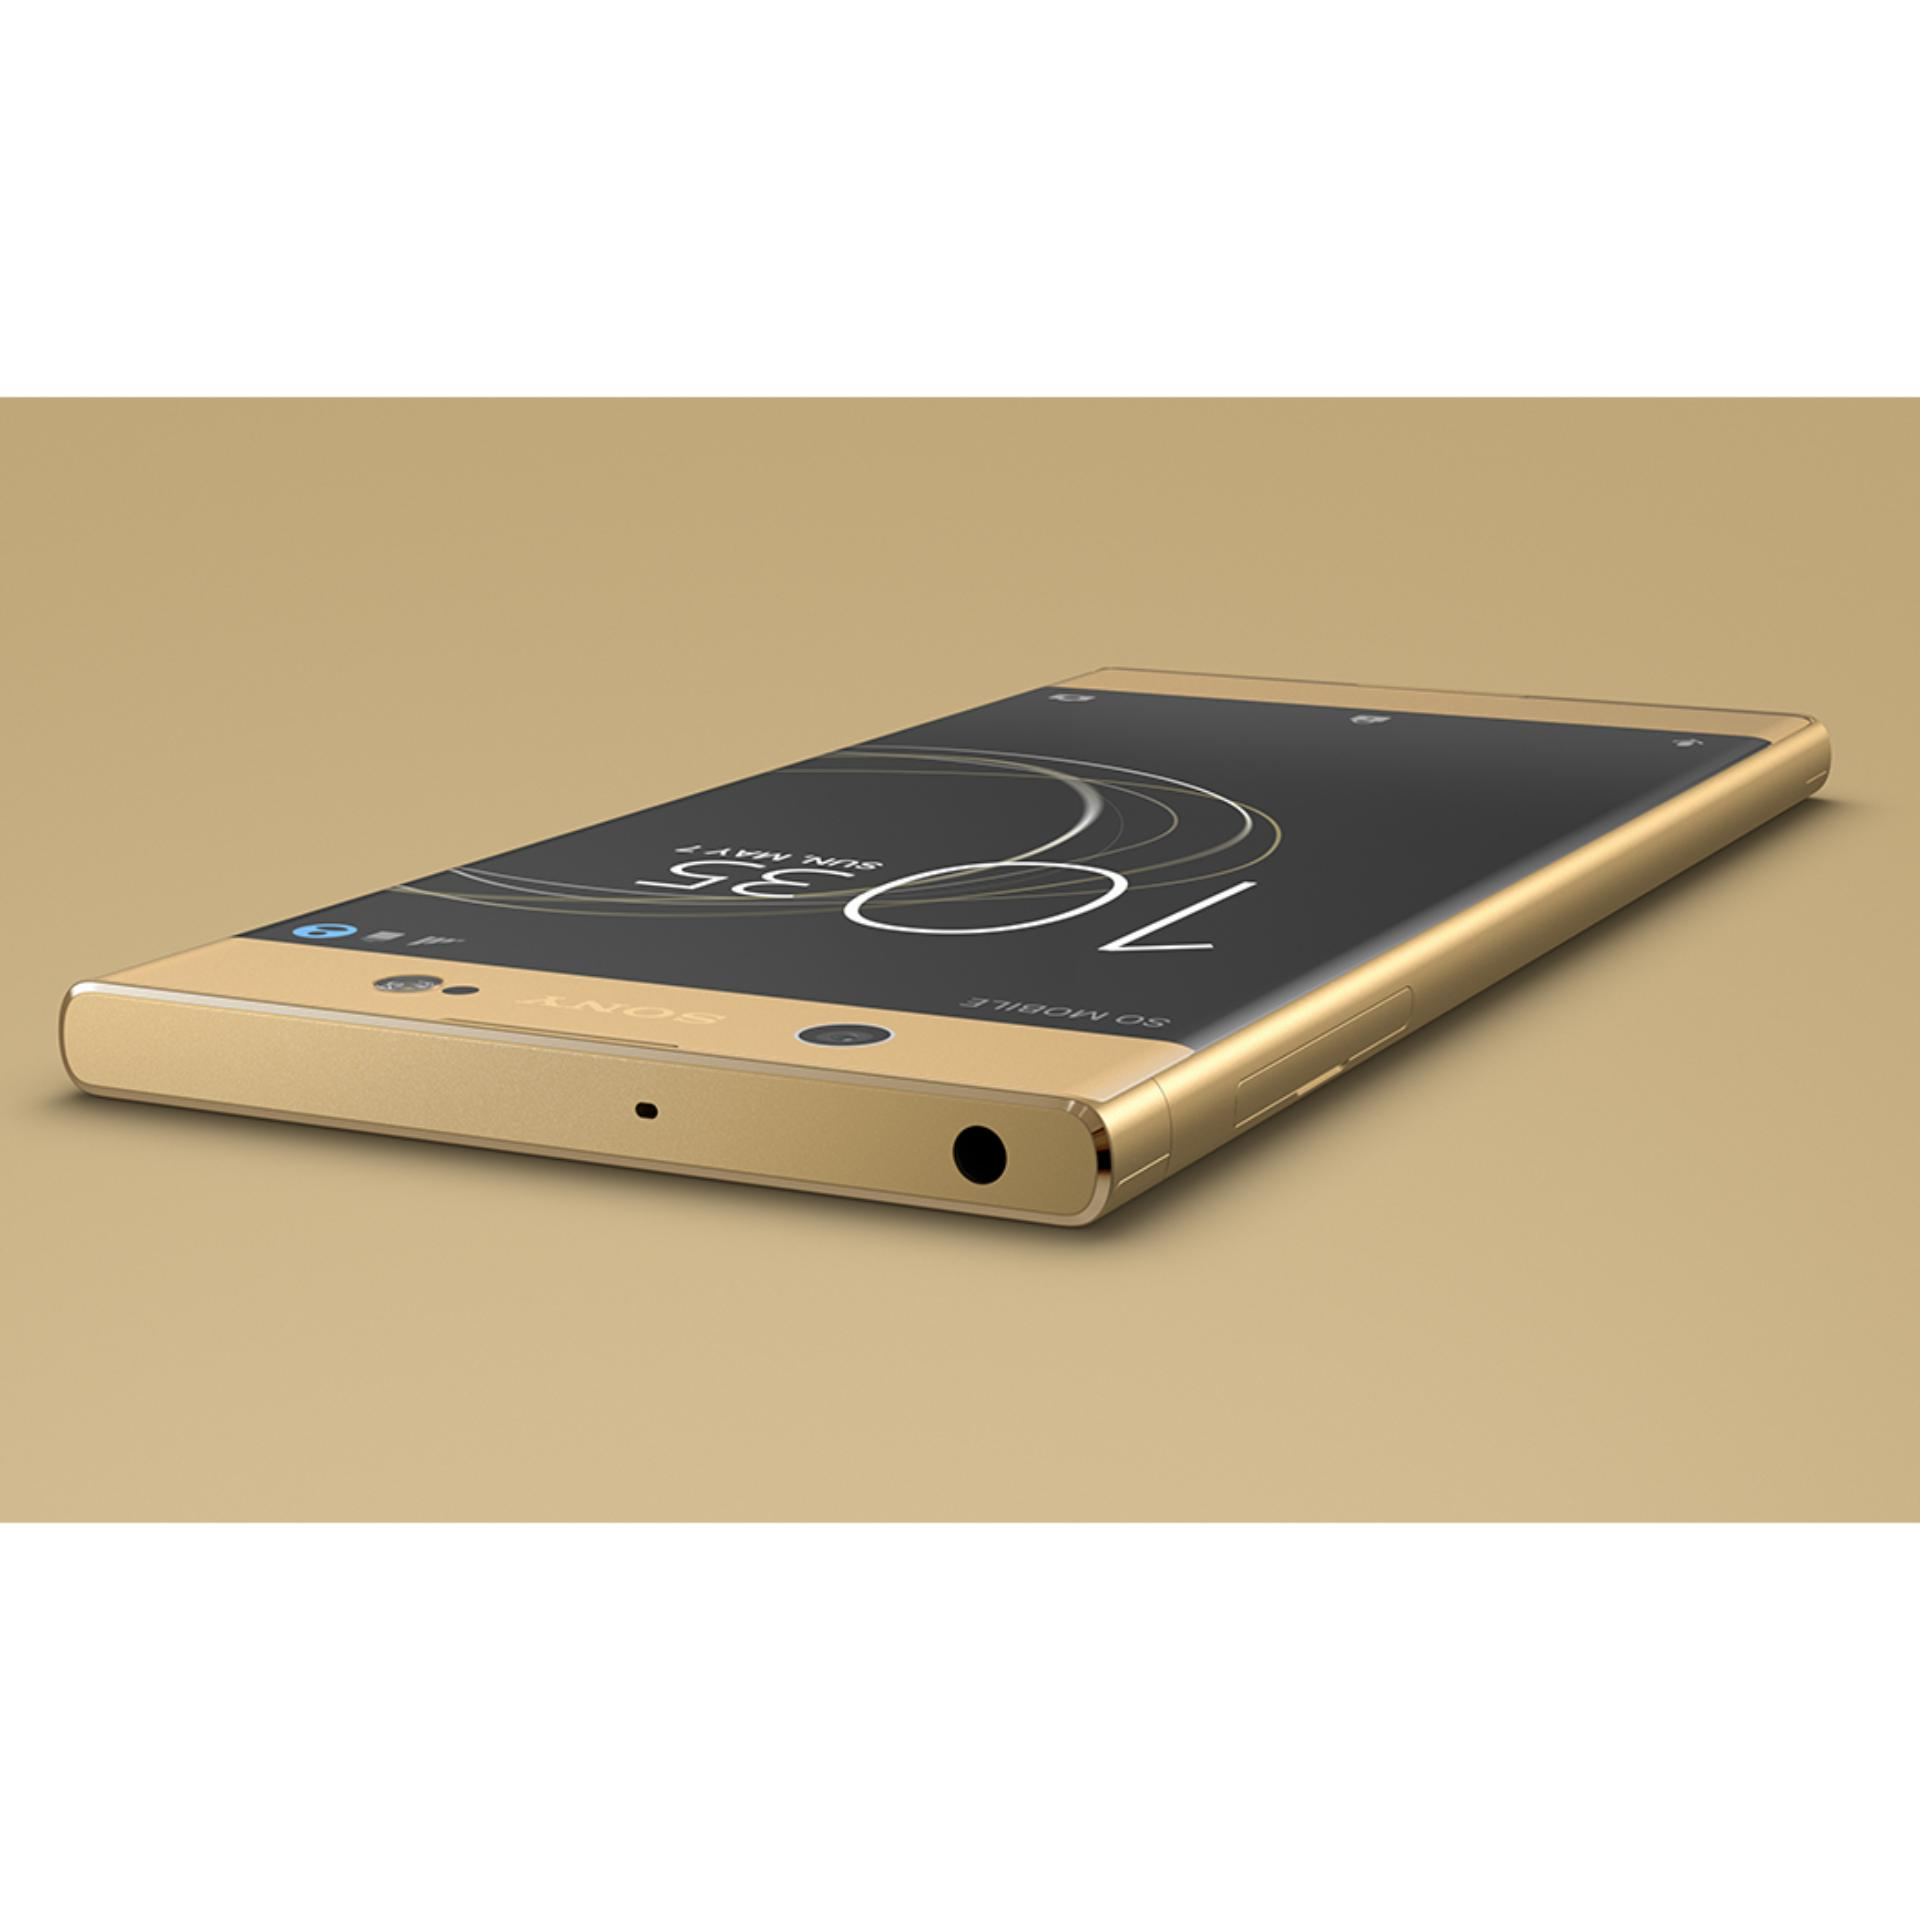 Sony Xperia XA1 Ultra 64GB / 4GB Ram (Gold) - 2017 Best Seller